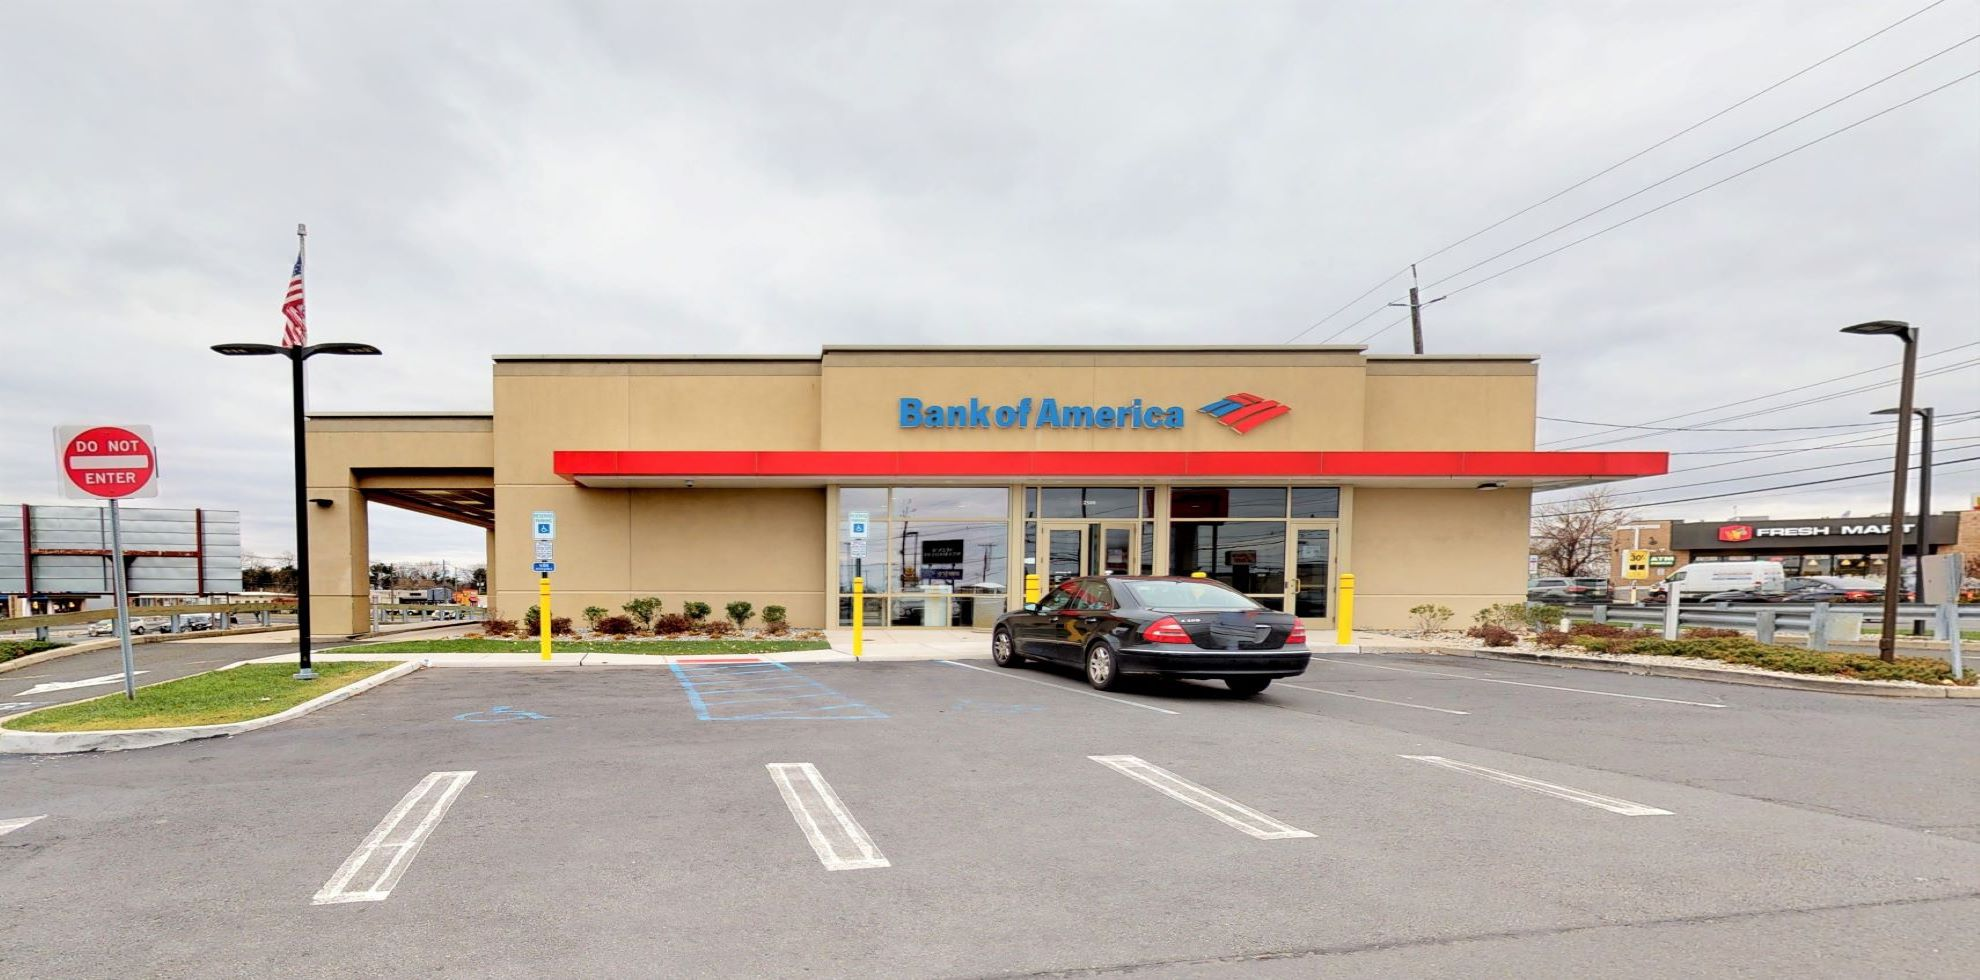 Bank of America financial center with drive-thru ATM | 2500 Route 22 Ctr, Union, NJ 07083